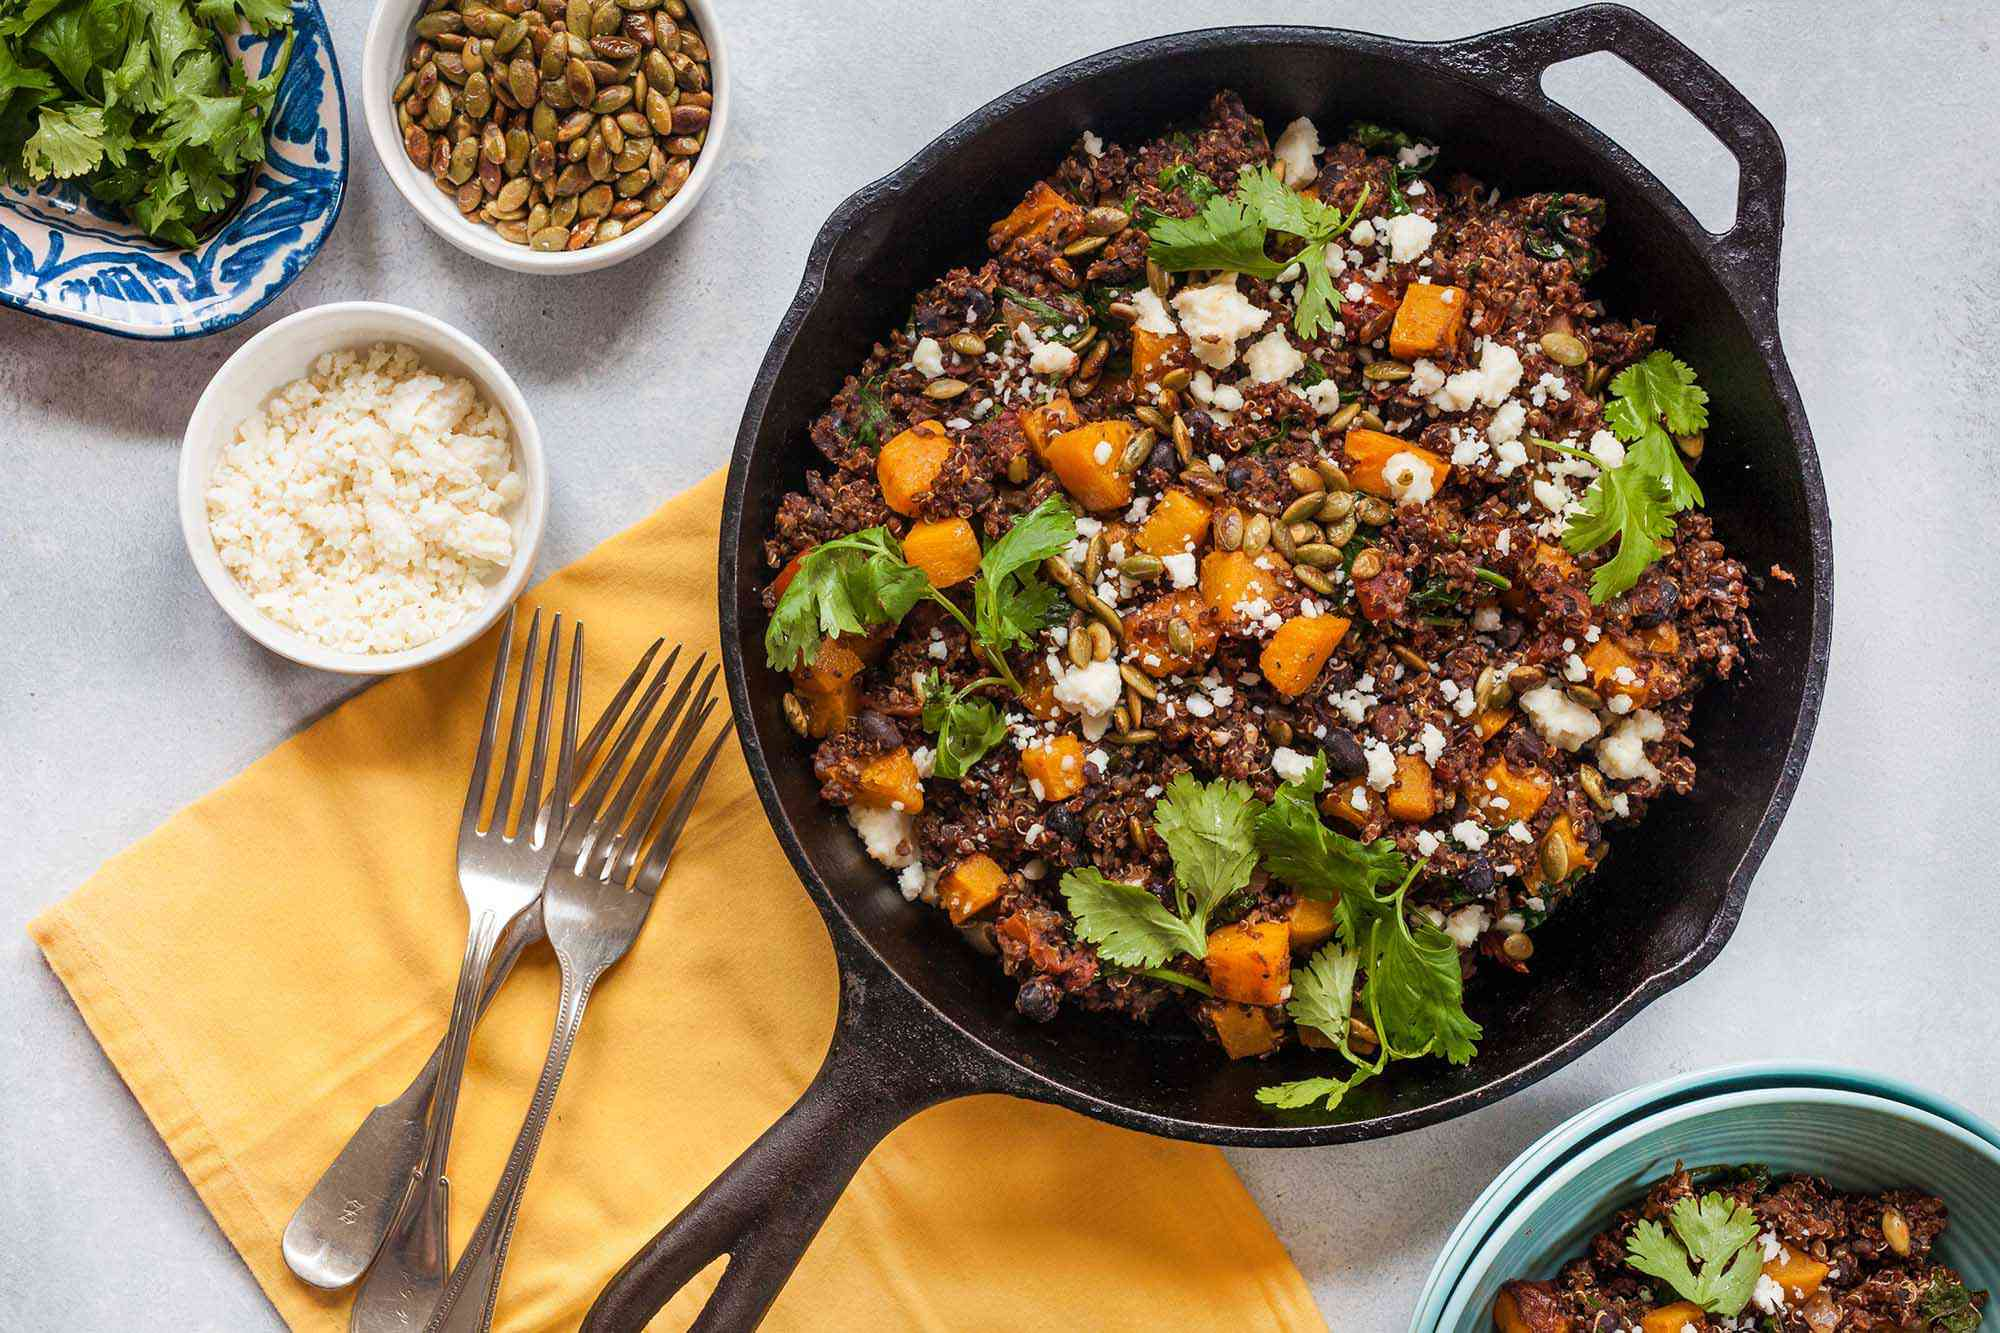 Horizontal view of a large cast iron skillet filled with a butternut squash skillet dinner. Cilantro, quinoa, butternut squash and cotija cheese are visible in the pan. To the left is a yellow napkin with three forks on it. Above the forks are three small bowls. One small bowl of rice, a ramiken of roasted pumpkin seeds and a small platter of cilantro.